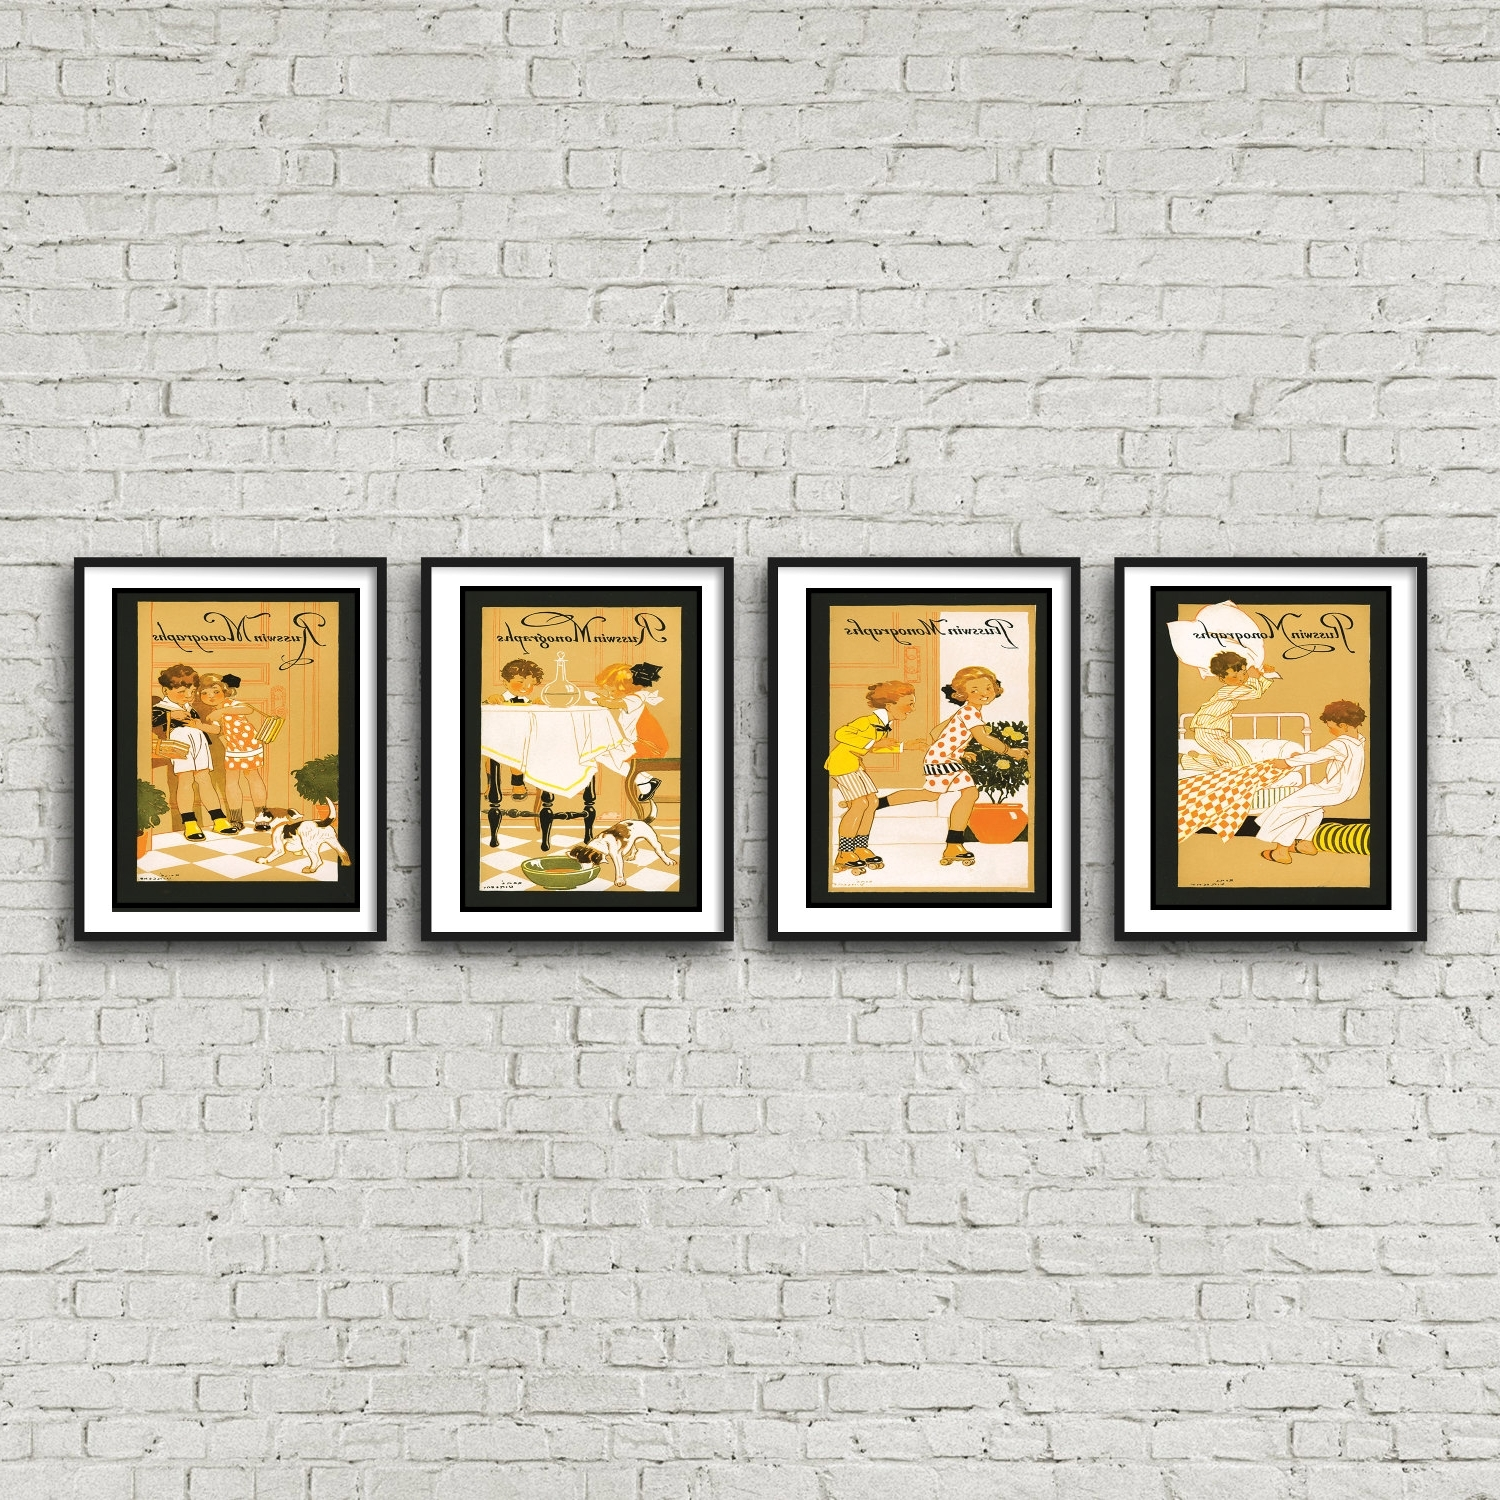 Framed Art Deco Prints For Most Popular 4 Piece Wall Art – Children's Art Deco Nursery Art  Free Shipping (Gallery 13 of 15)